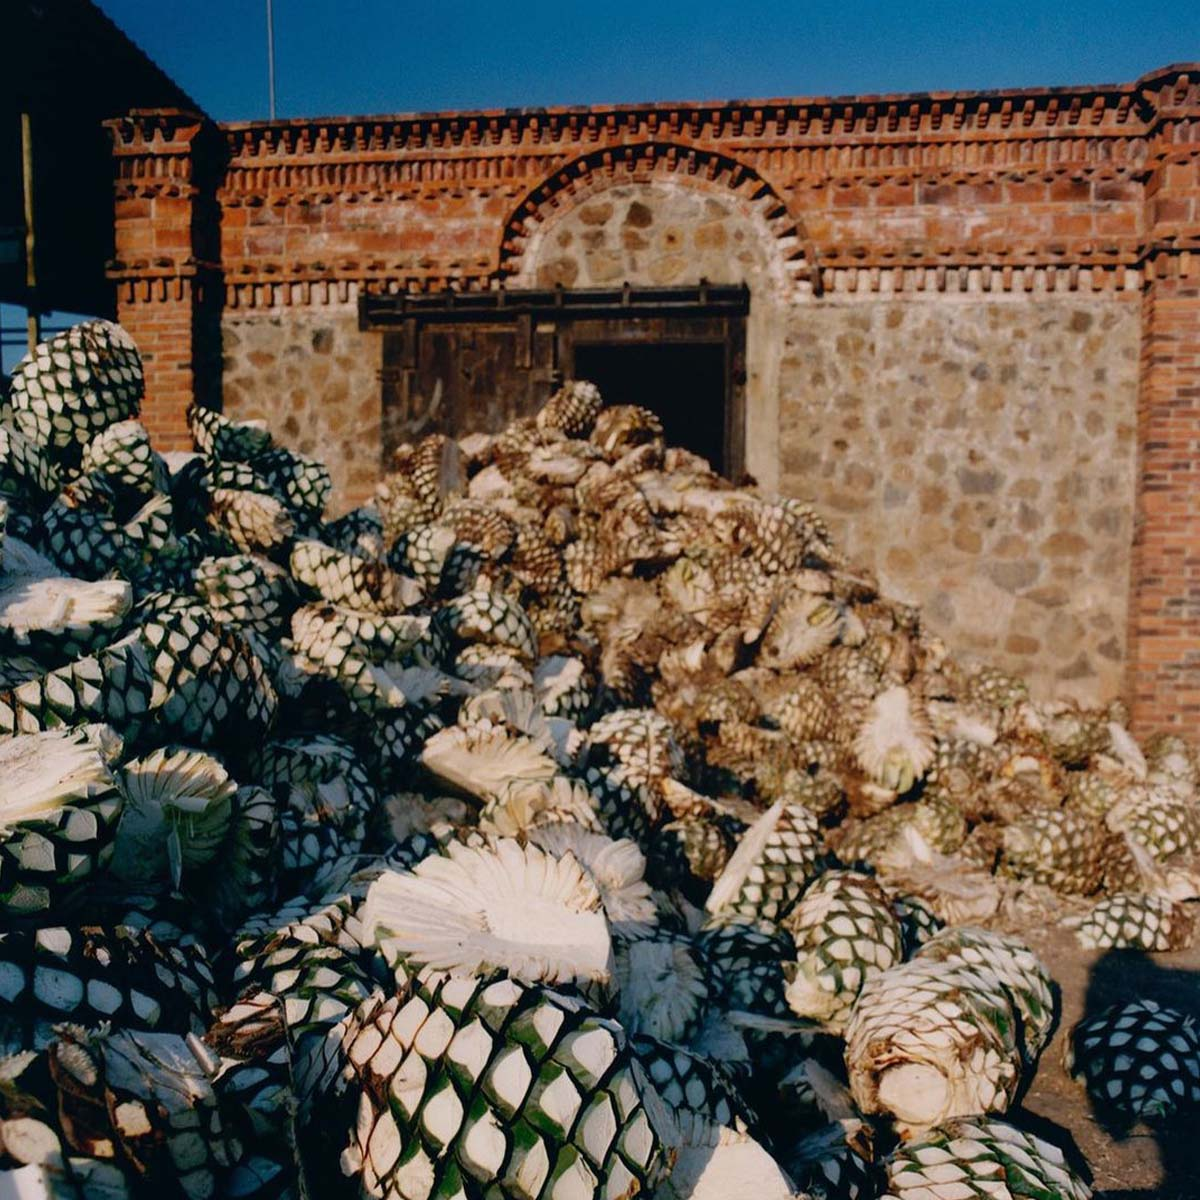 Tequila ready to be distilled